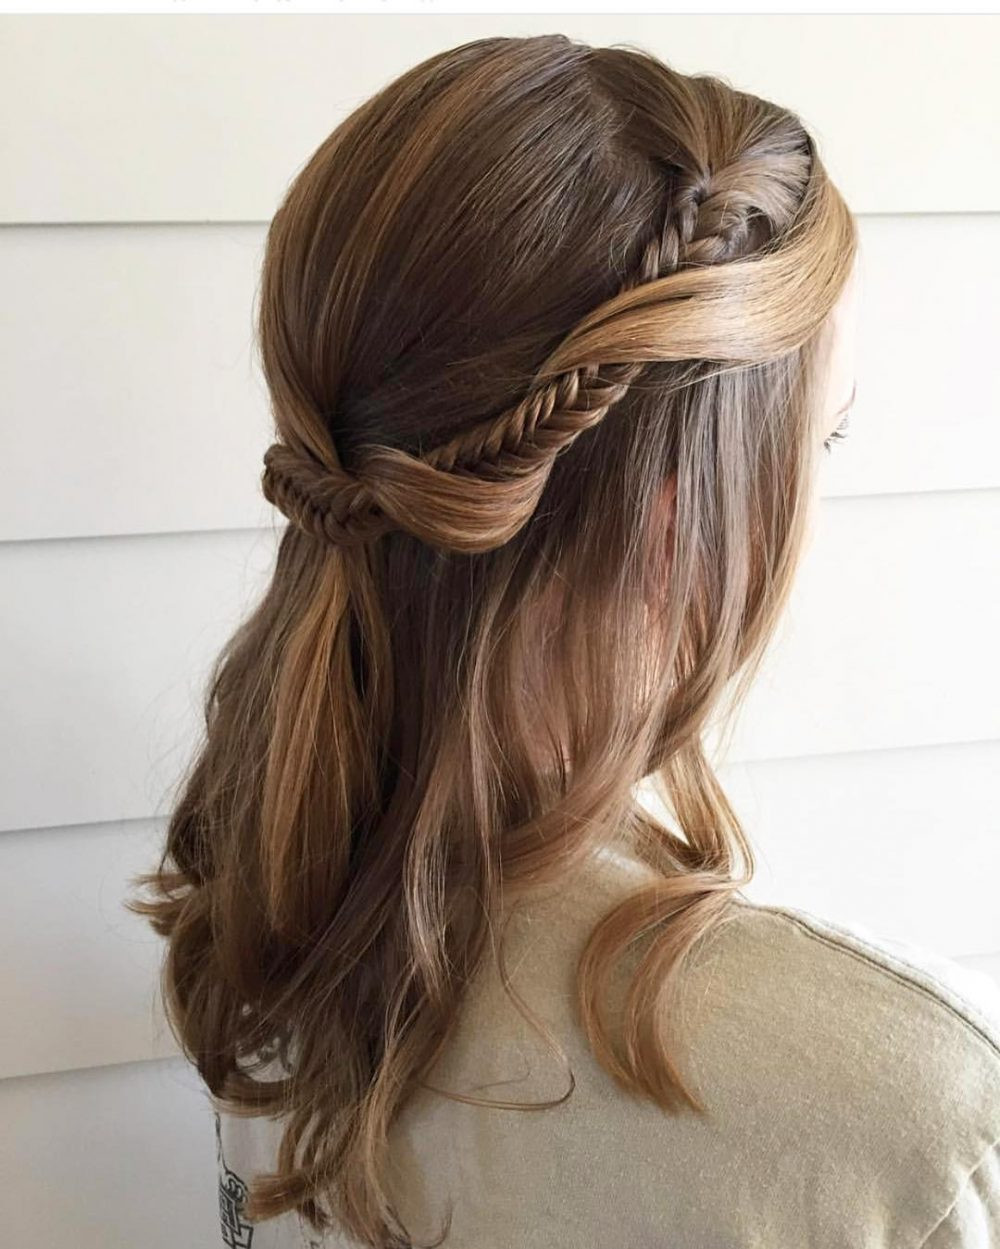 Best ideas about Simple Hairstyles For Prom . Save or Pin 20 Super Easy Updos Anyone Can Do Trending in 2019 Now.